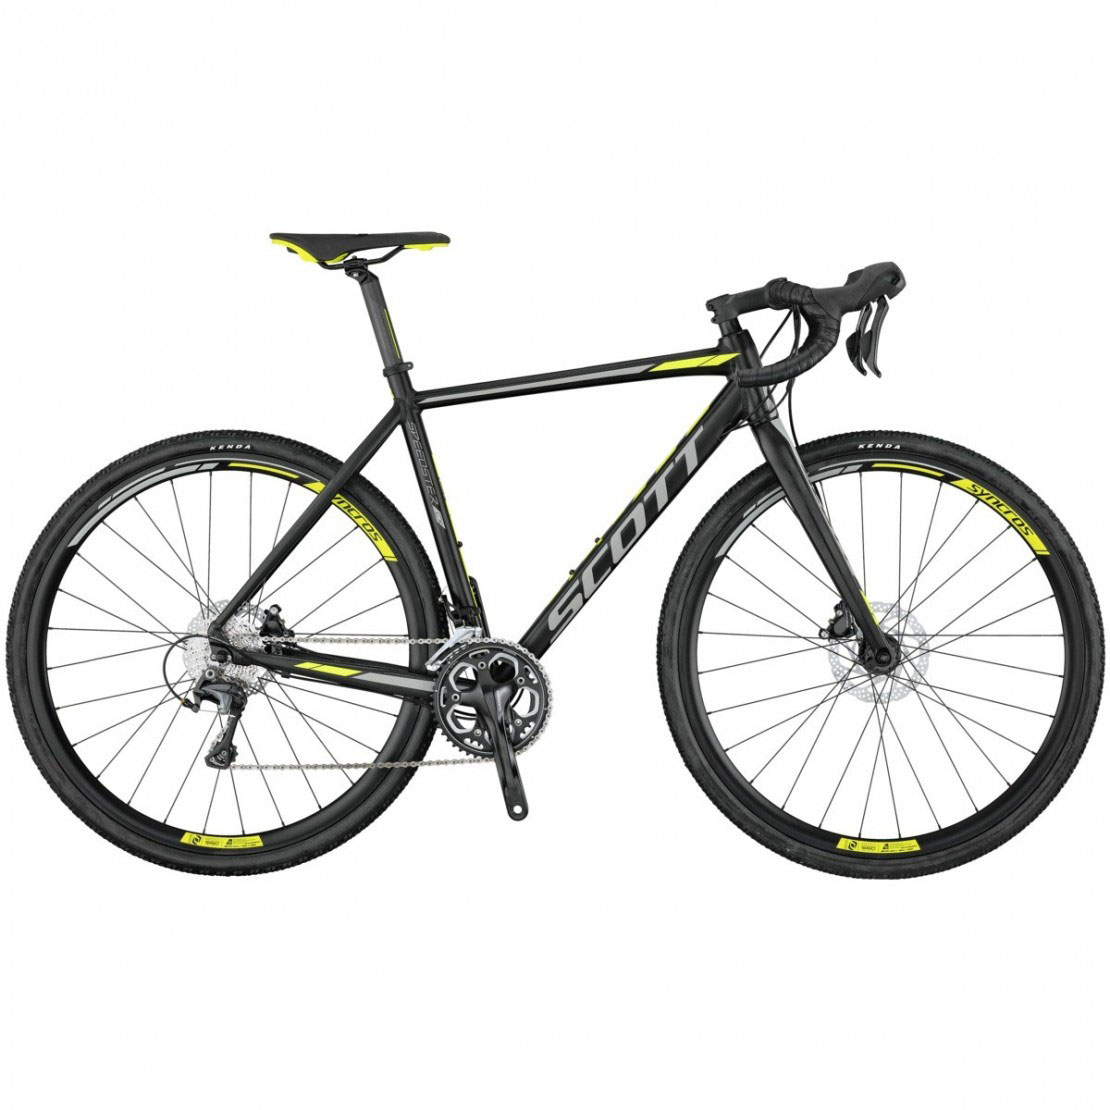 Speedster CX 10 disc - 2017